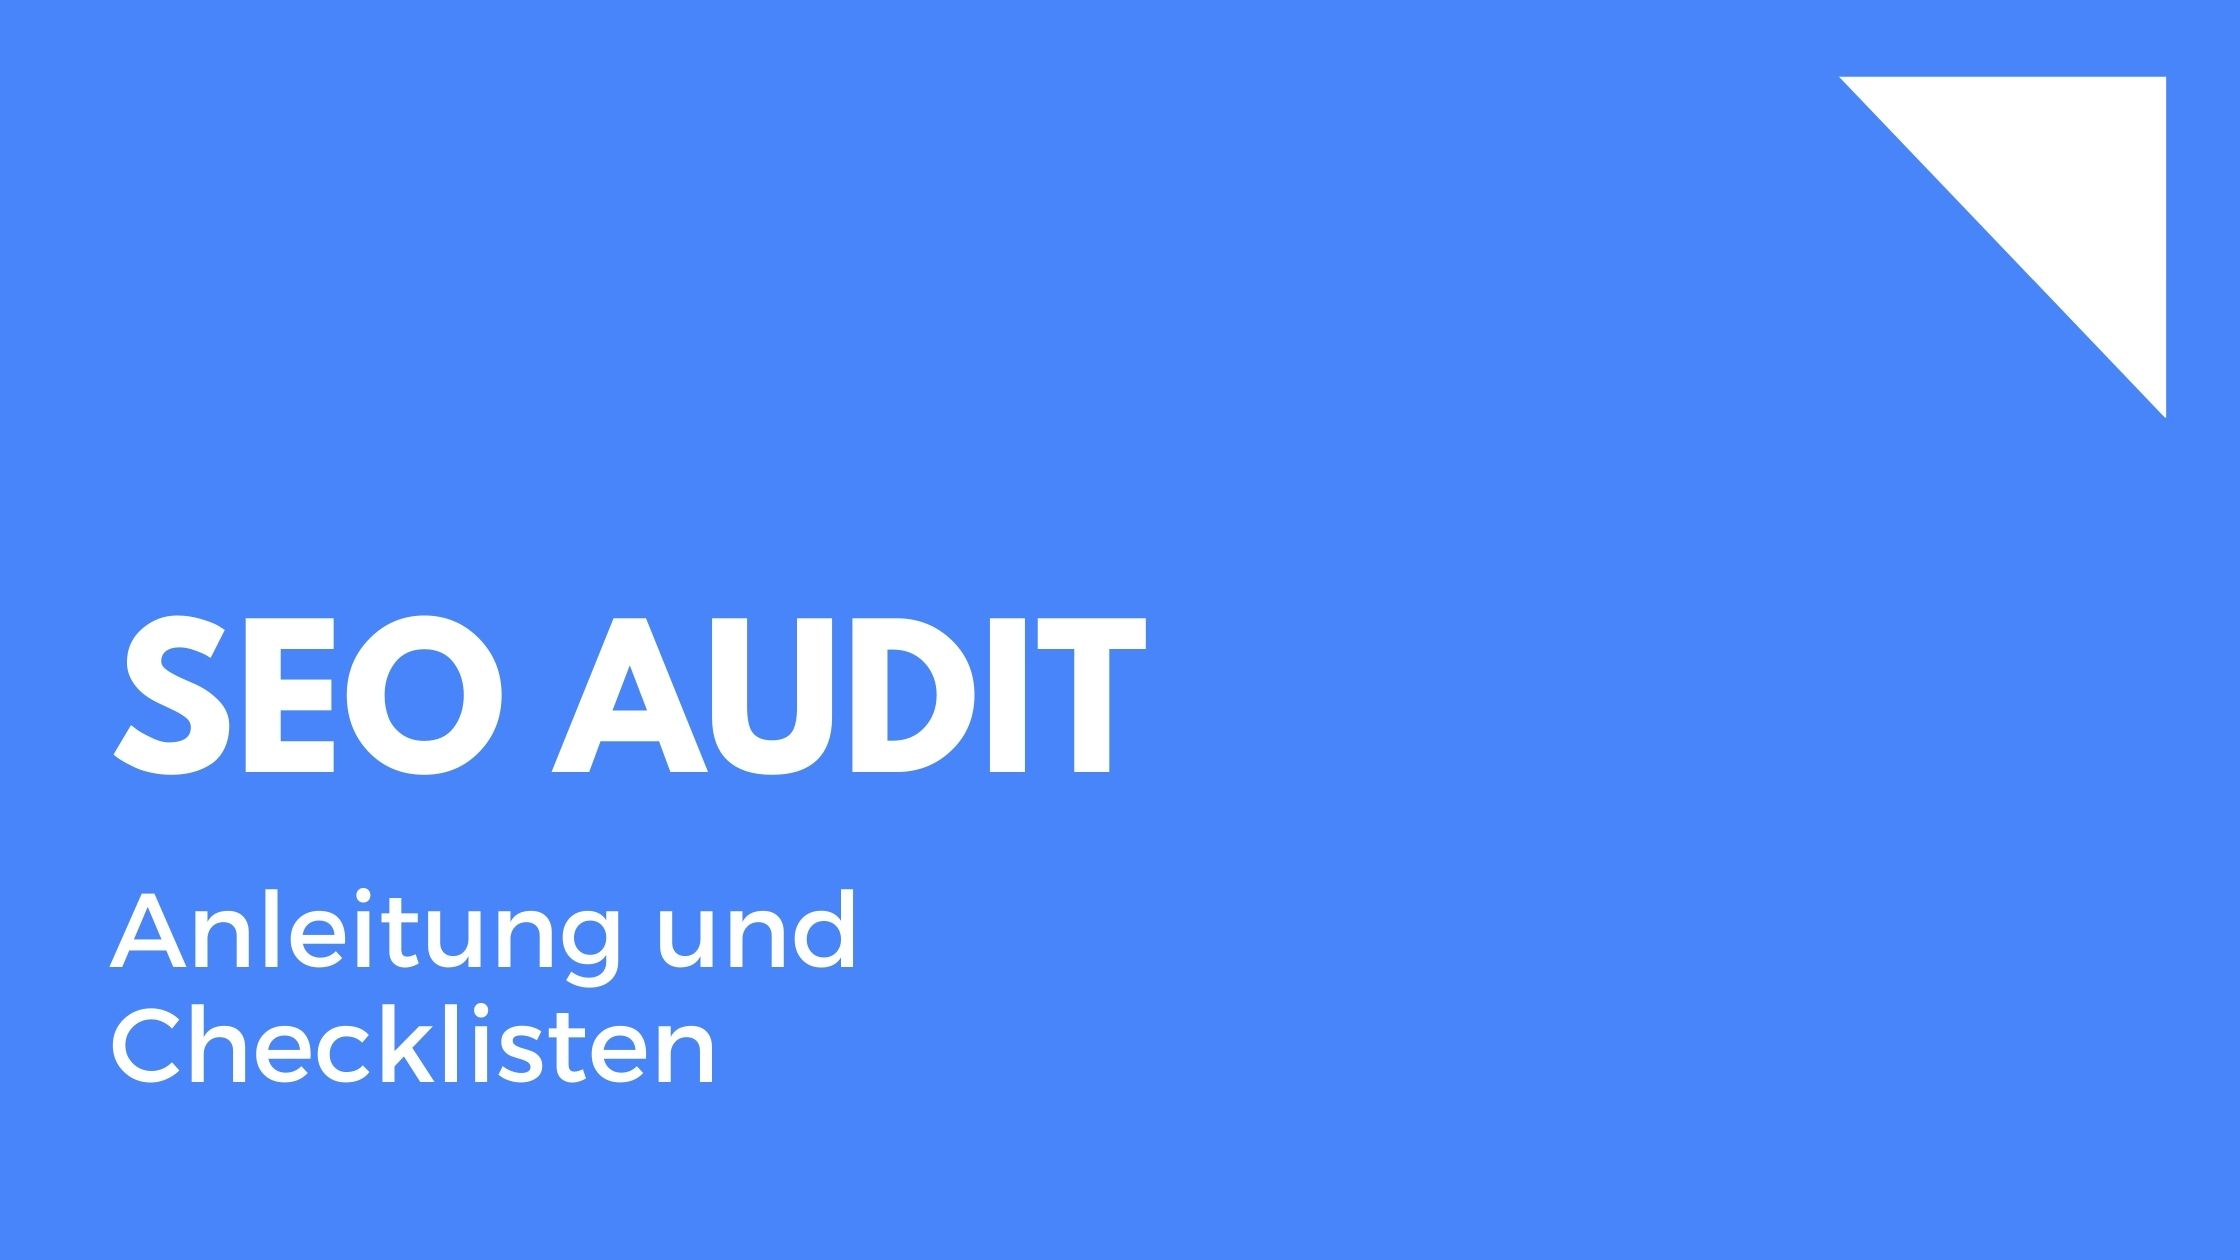 SEO Audit Onpage - Anleitung